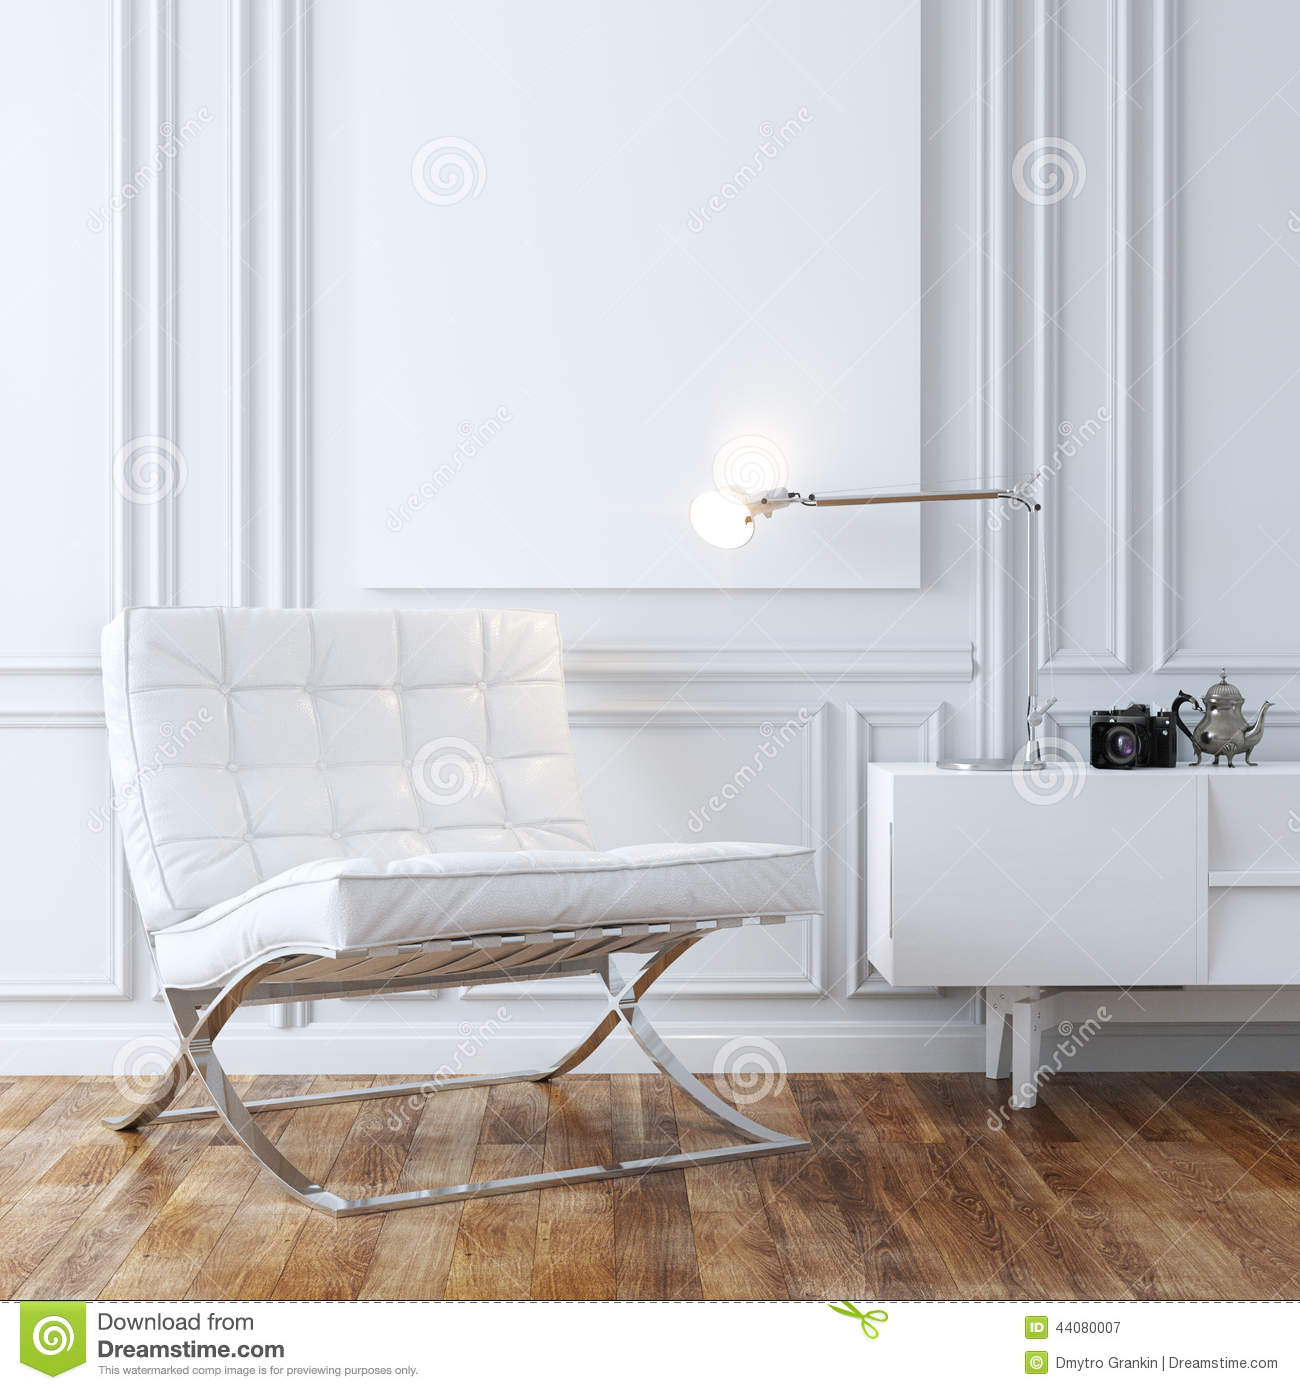 Modern Exhibition Stand Vector : Stylish white leather armchair in classic interior design